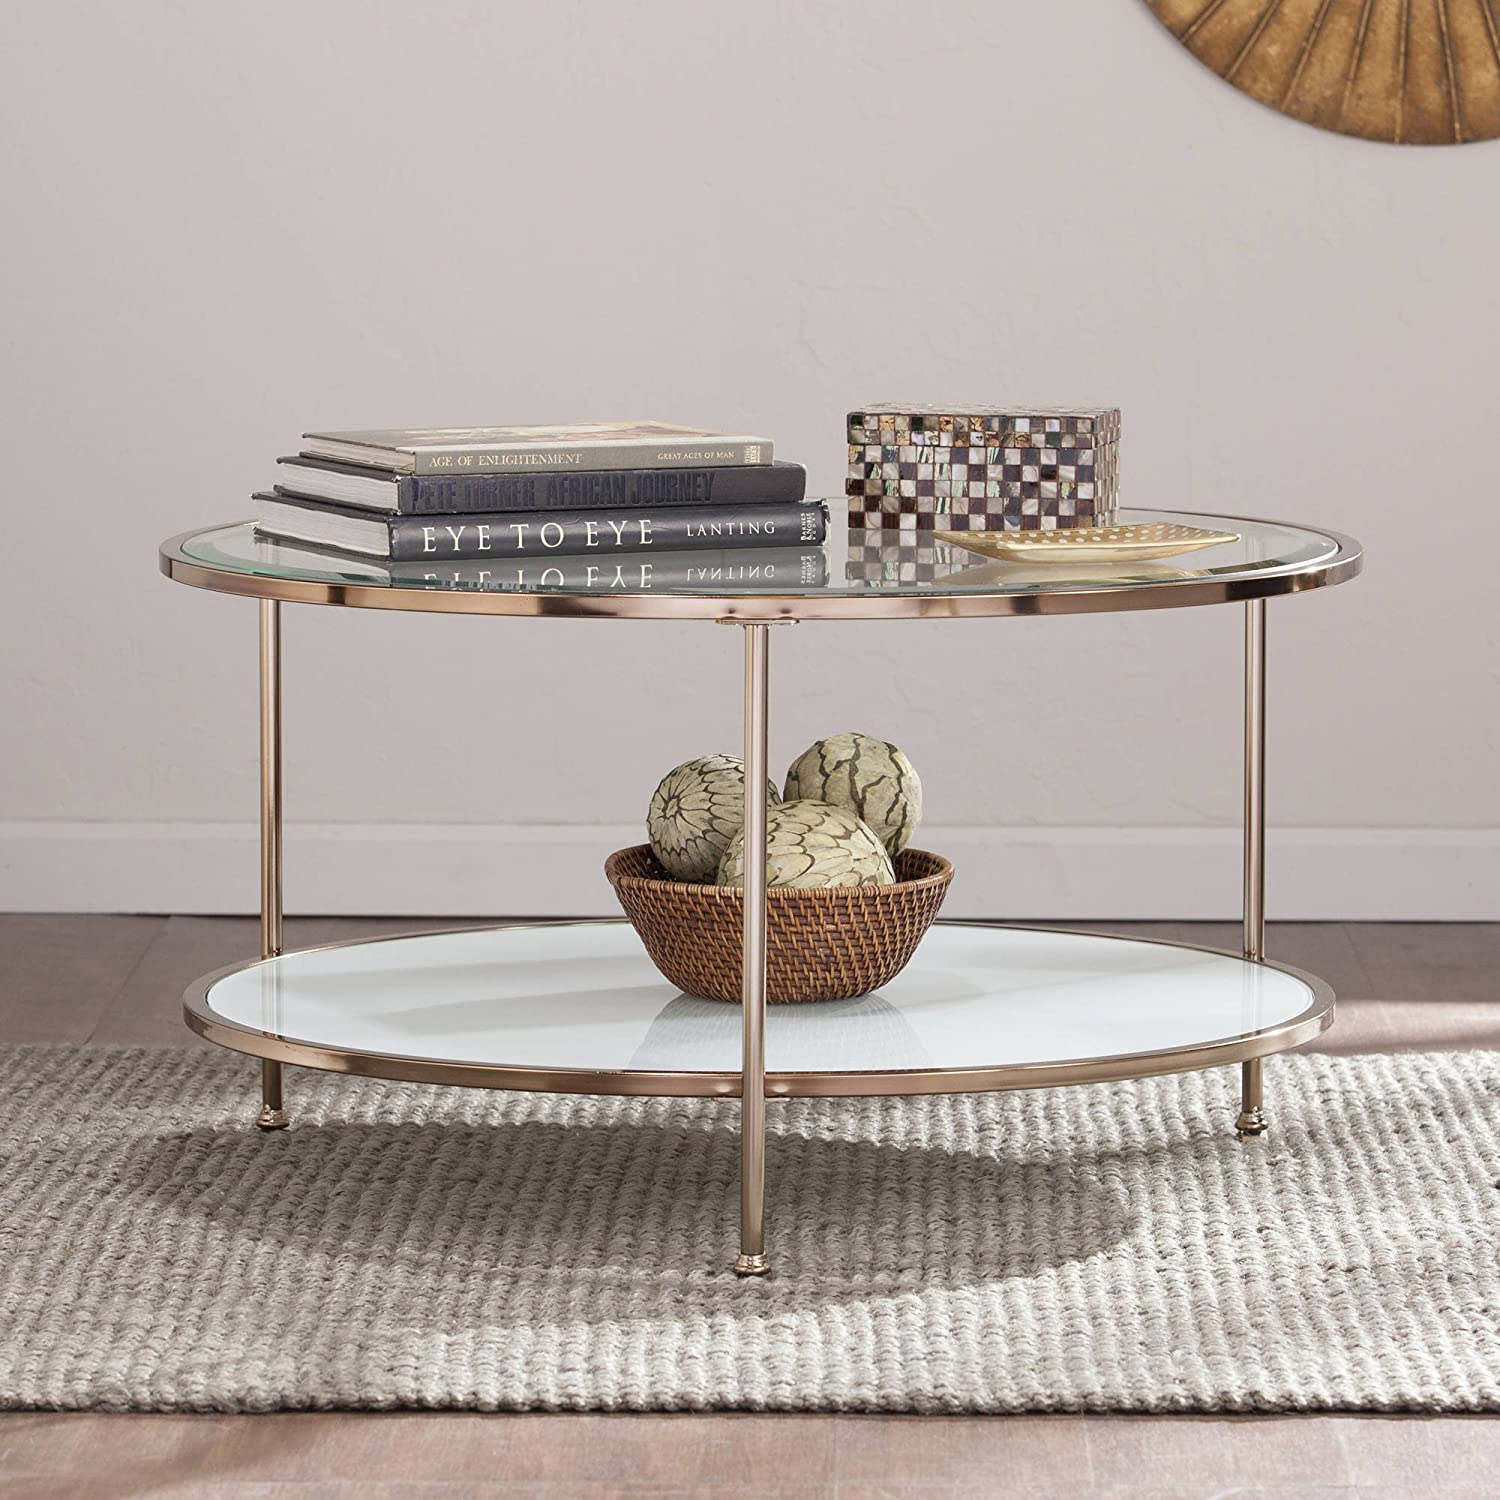 Round coffee table metallic gold finish metal and glass composition white shelf glam style iron living room furniture bundle with our expert guide